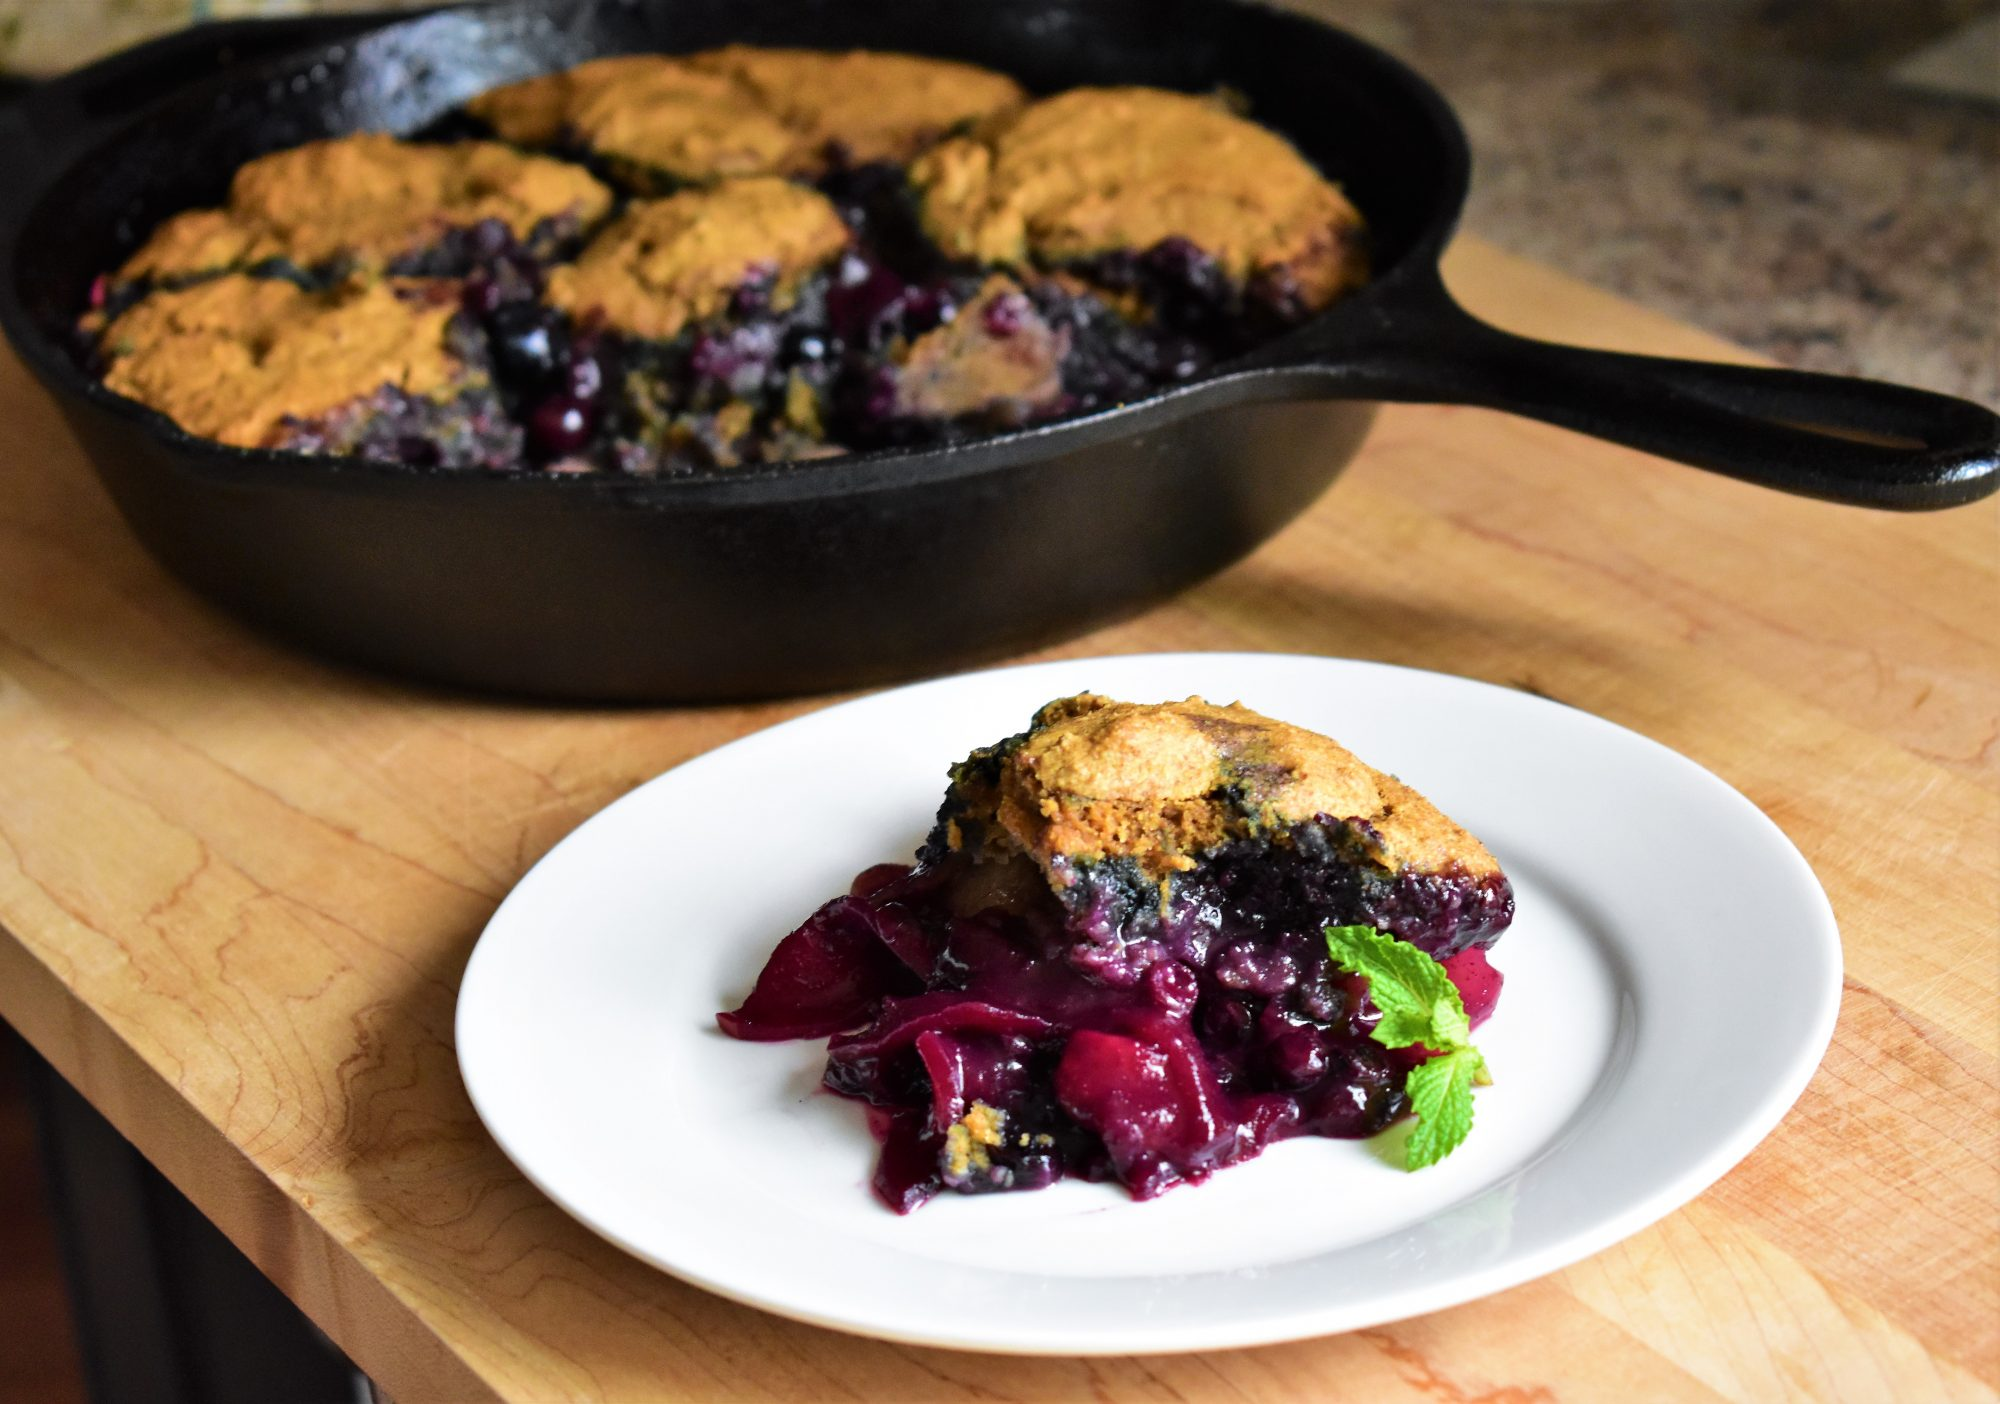 Piece of Apple-Blueberry Cobbler on white plate next to cast iron pan with cobbler